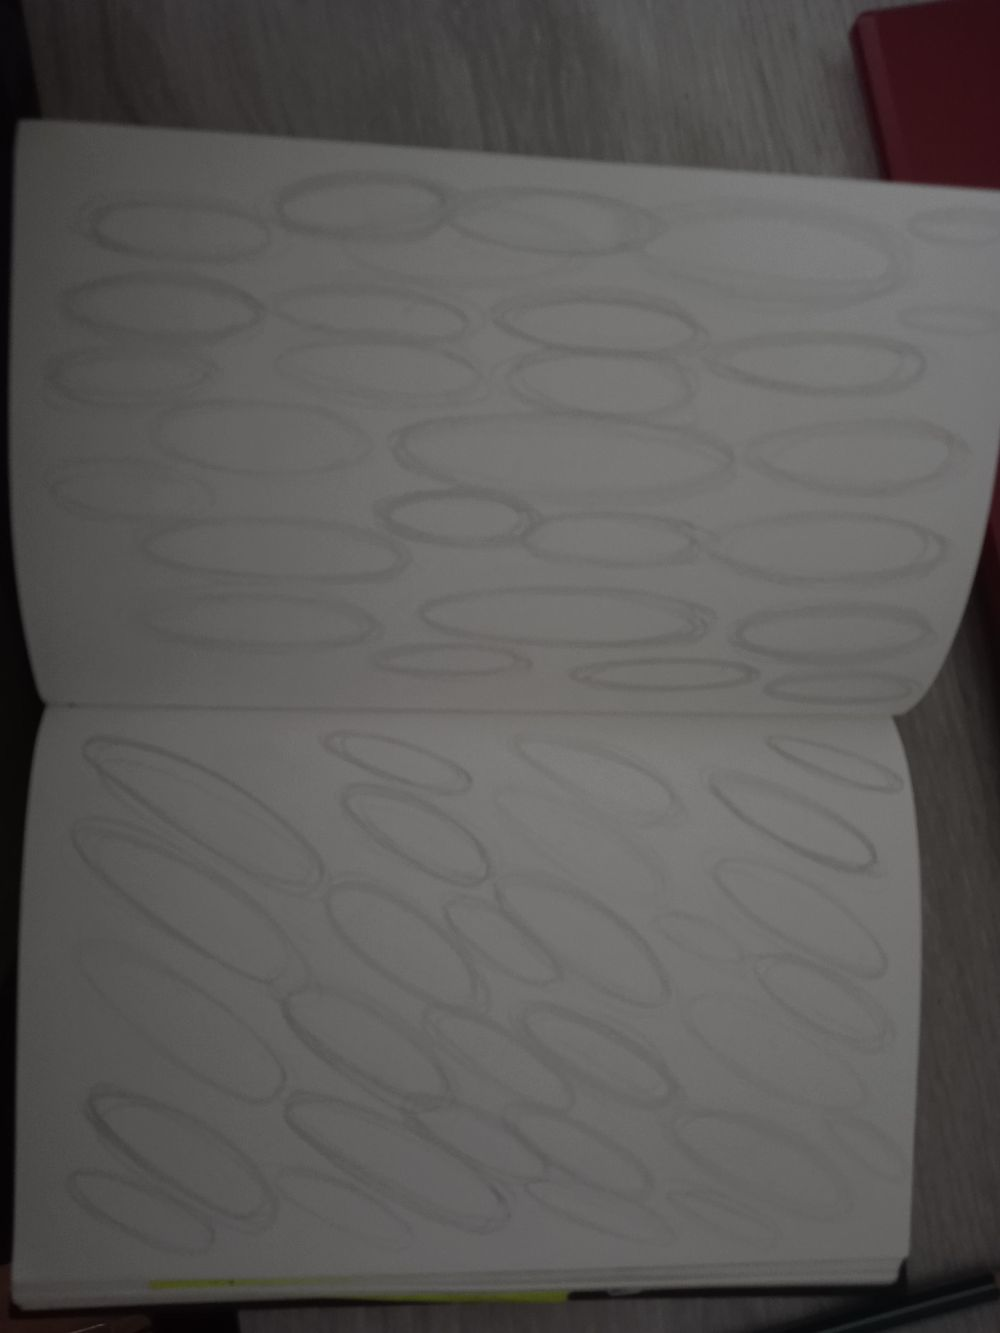 Lesson 3 done! - image 2 - student project